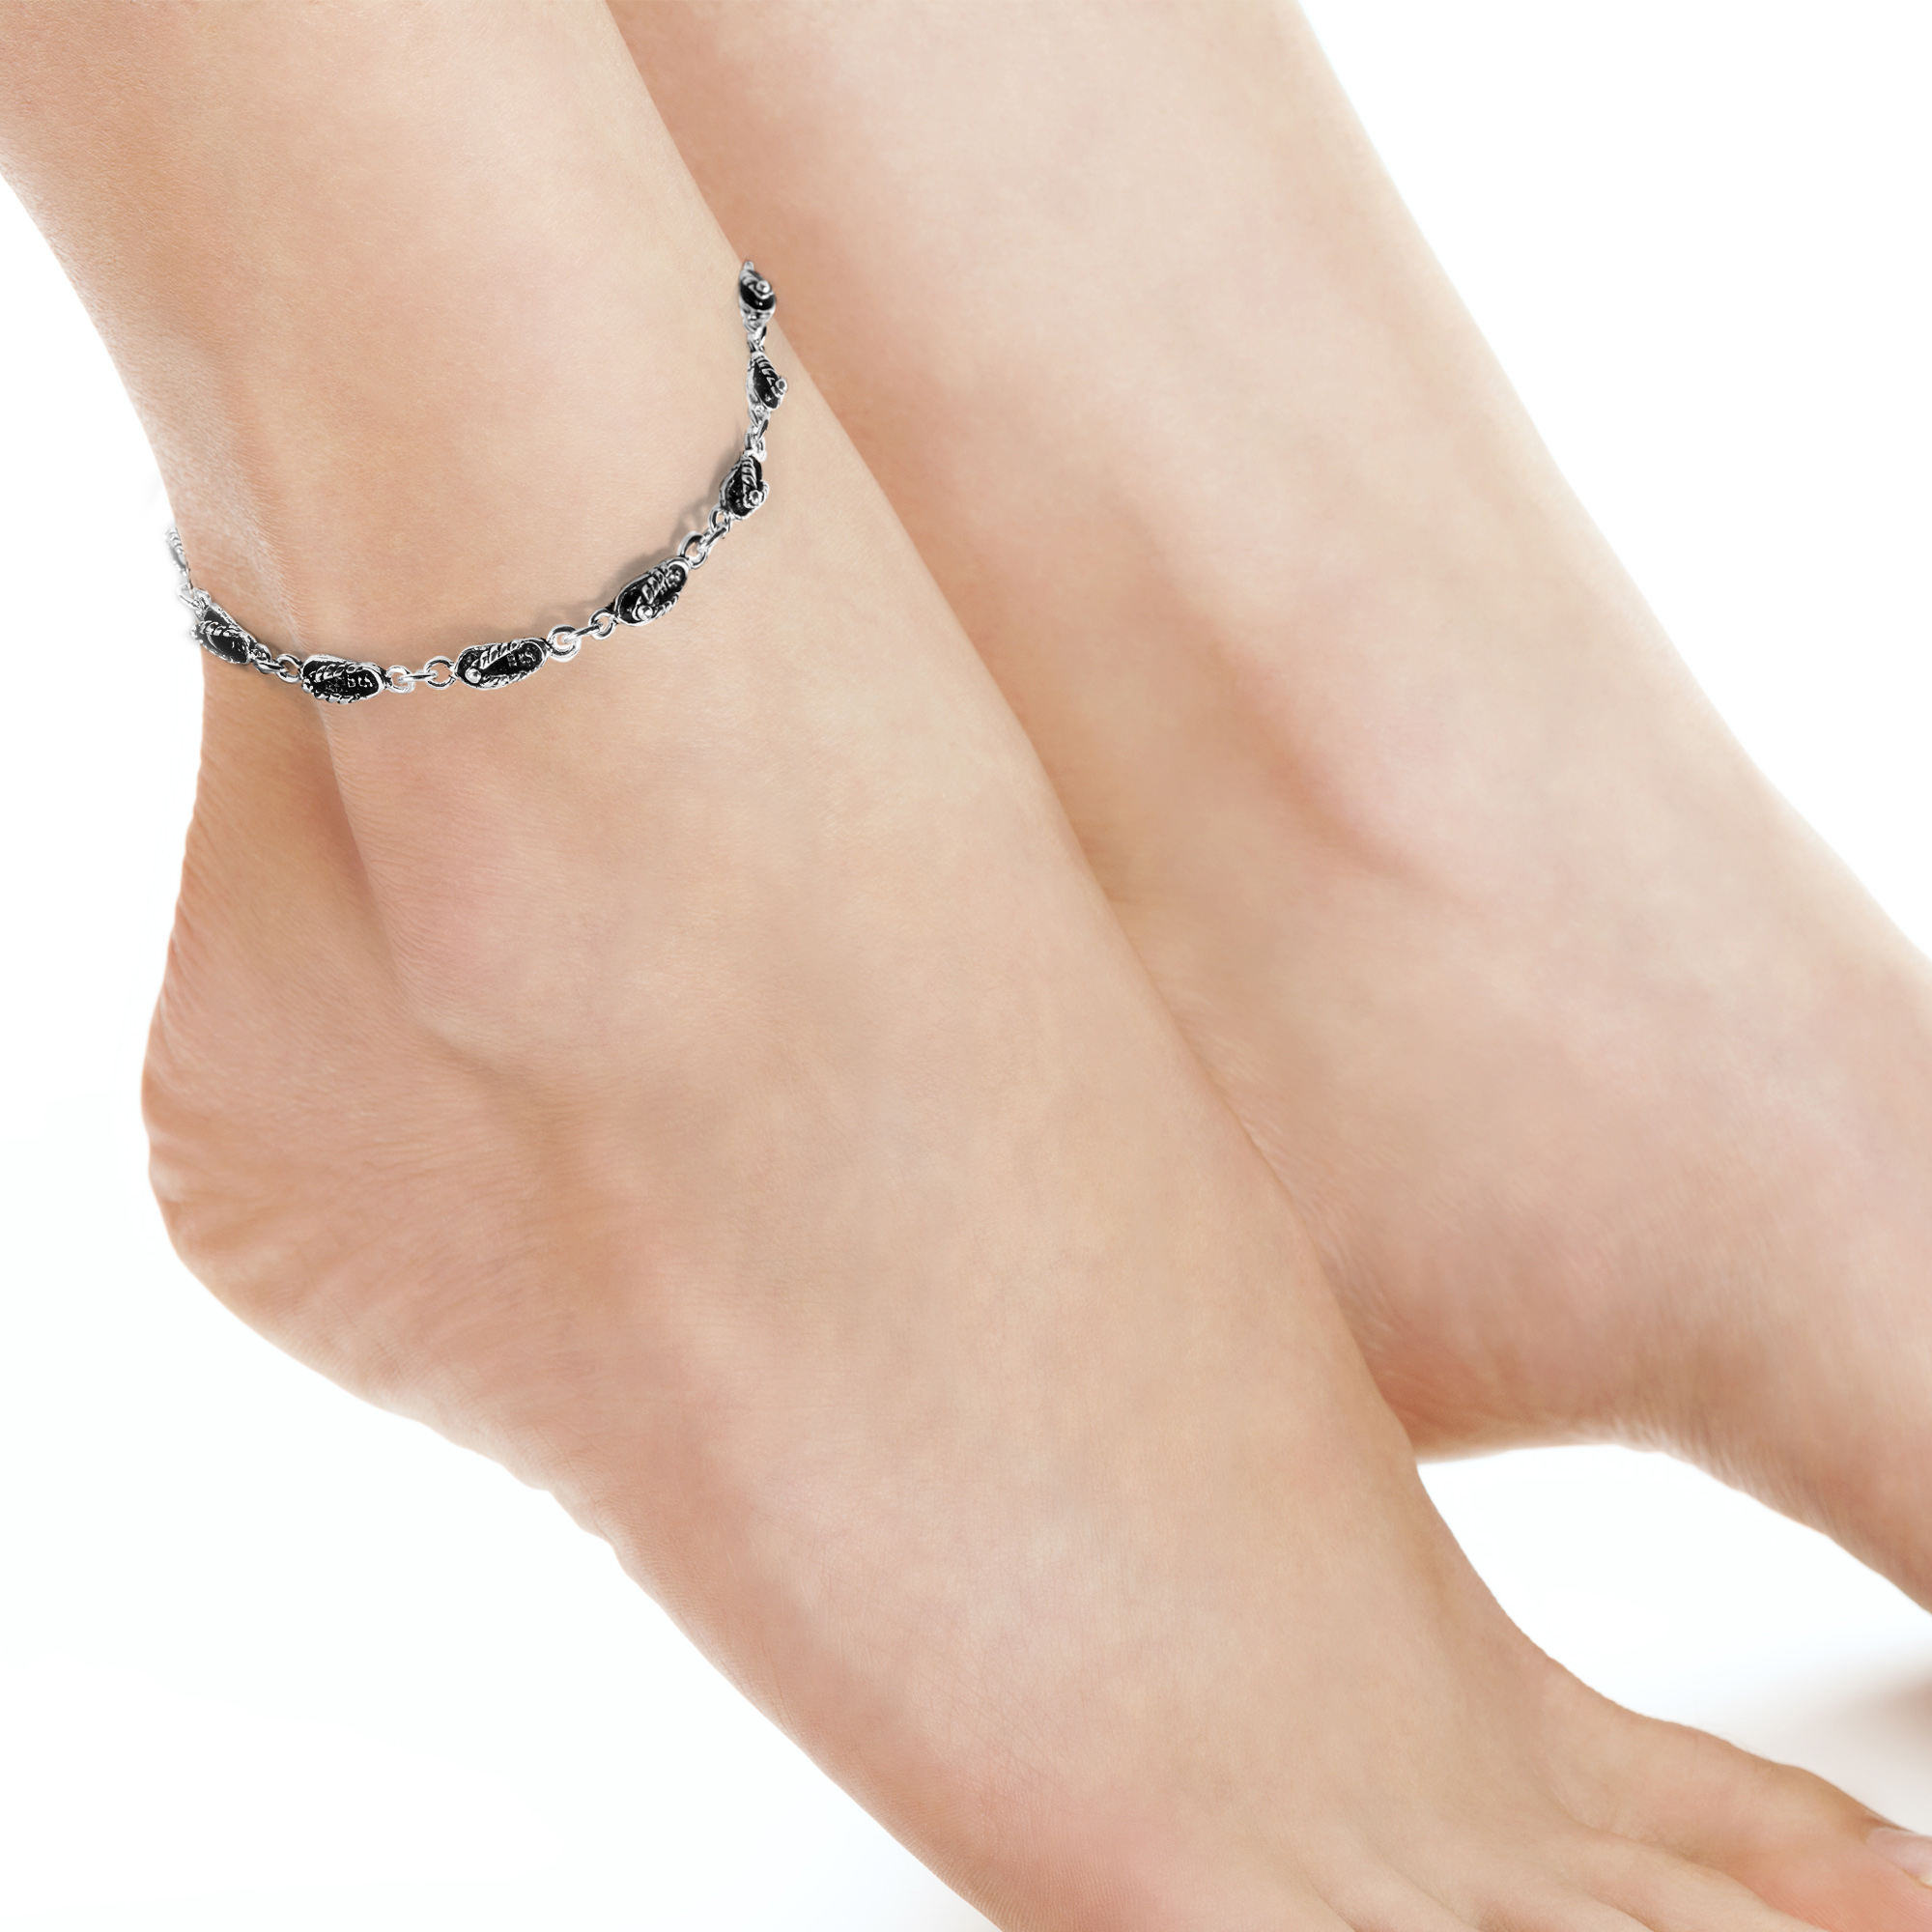 barefoot jewelry suppliers leaf connection anklets china foot buy from pie beach anklet bracelet stack women directly fashion tassel cheap pin chain bracelets for fine quality overmal sandal